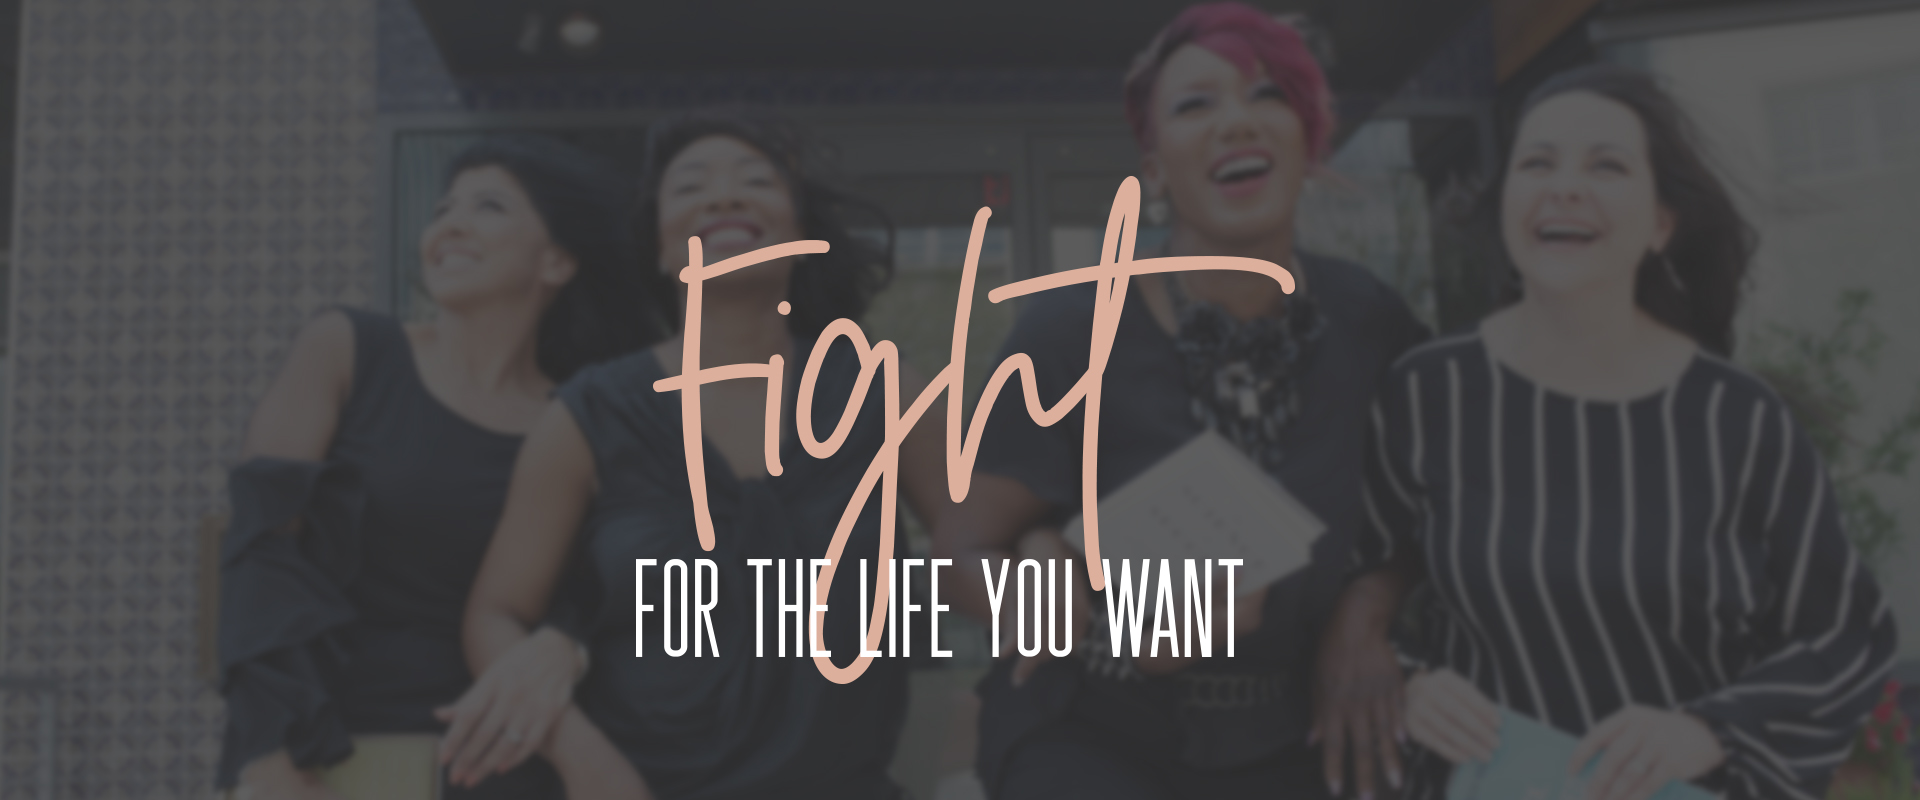 fightforthelifeyouwant